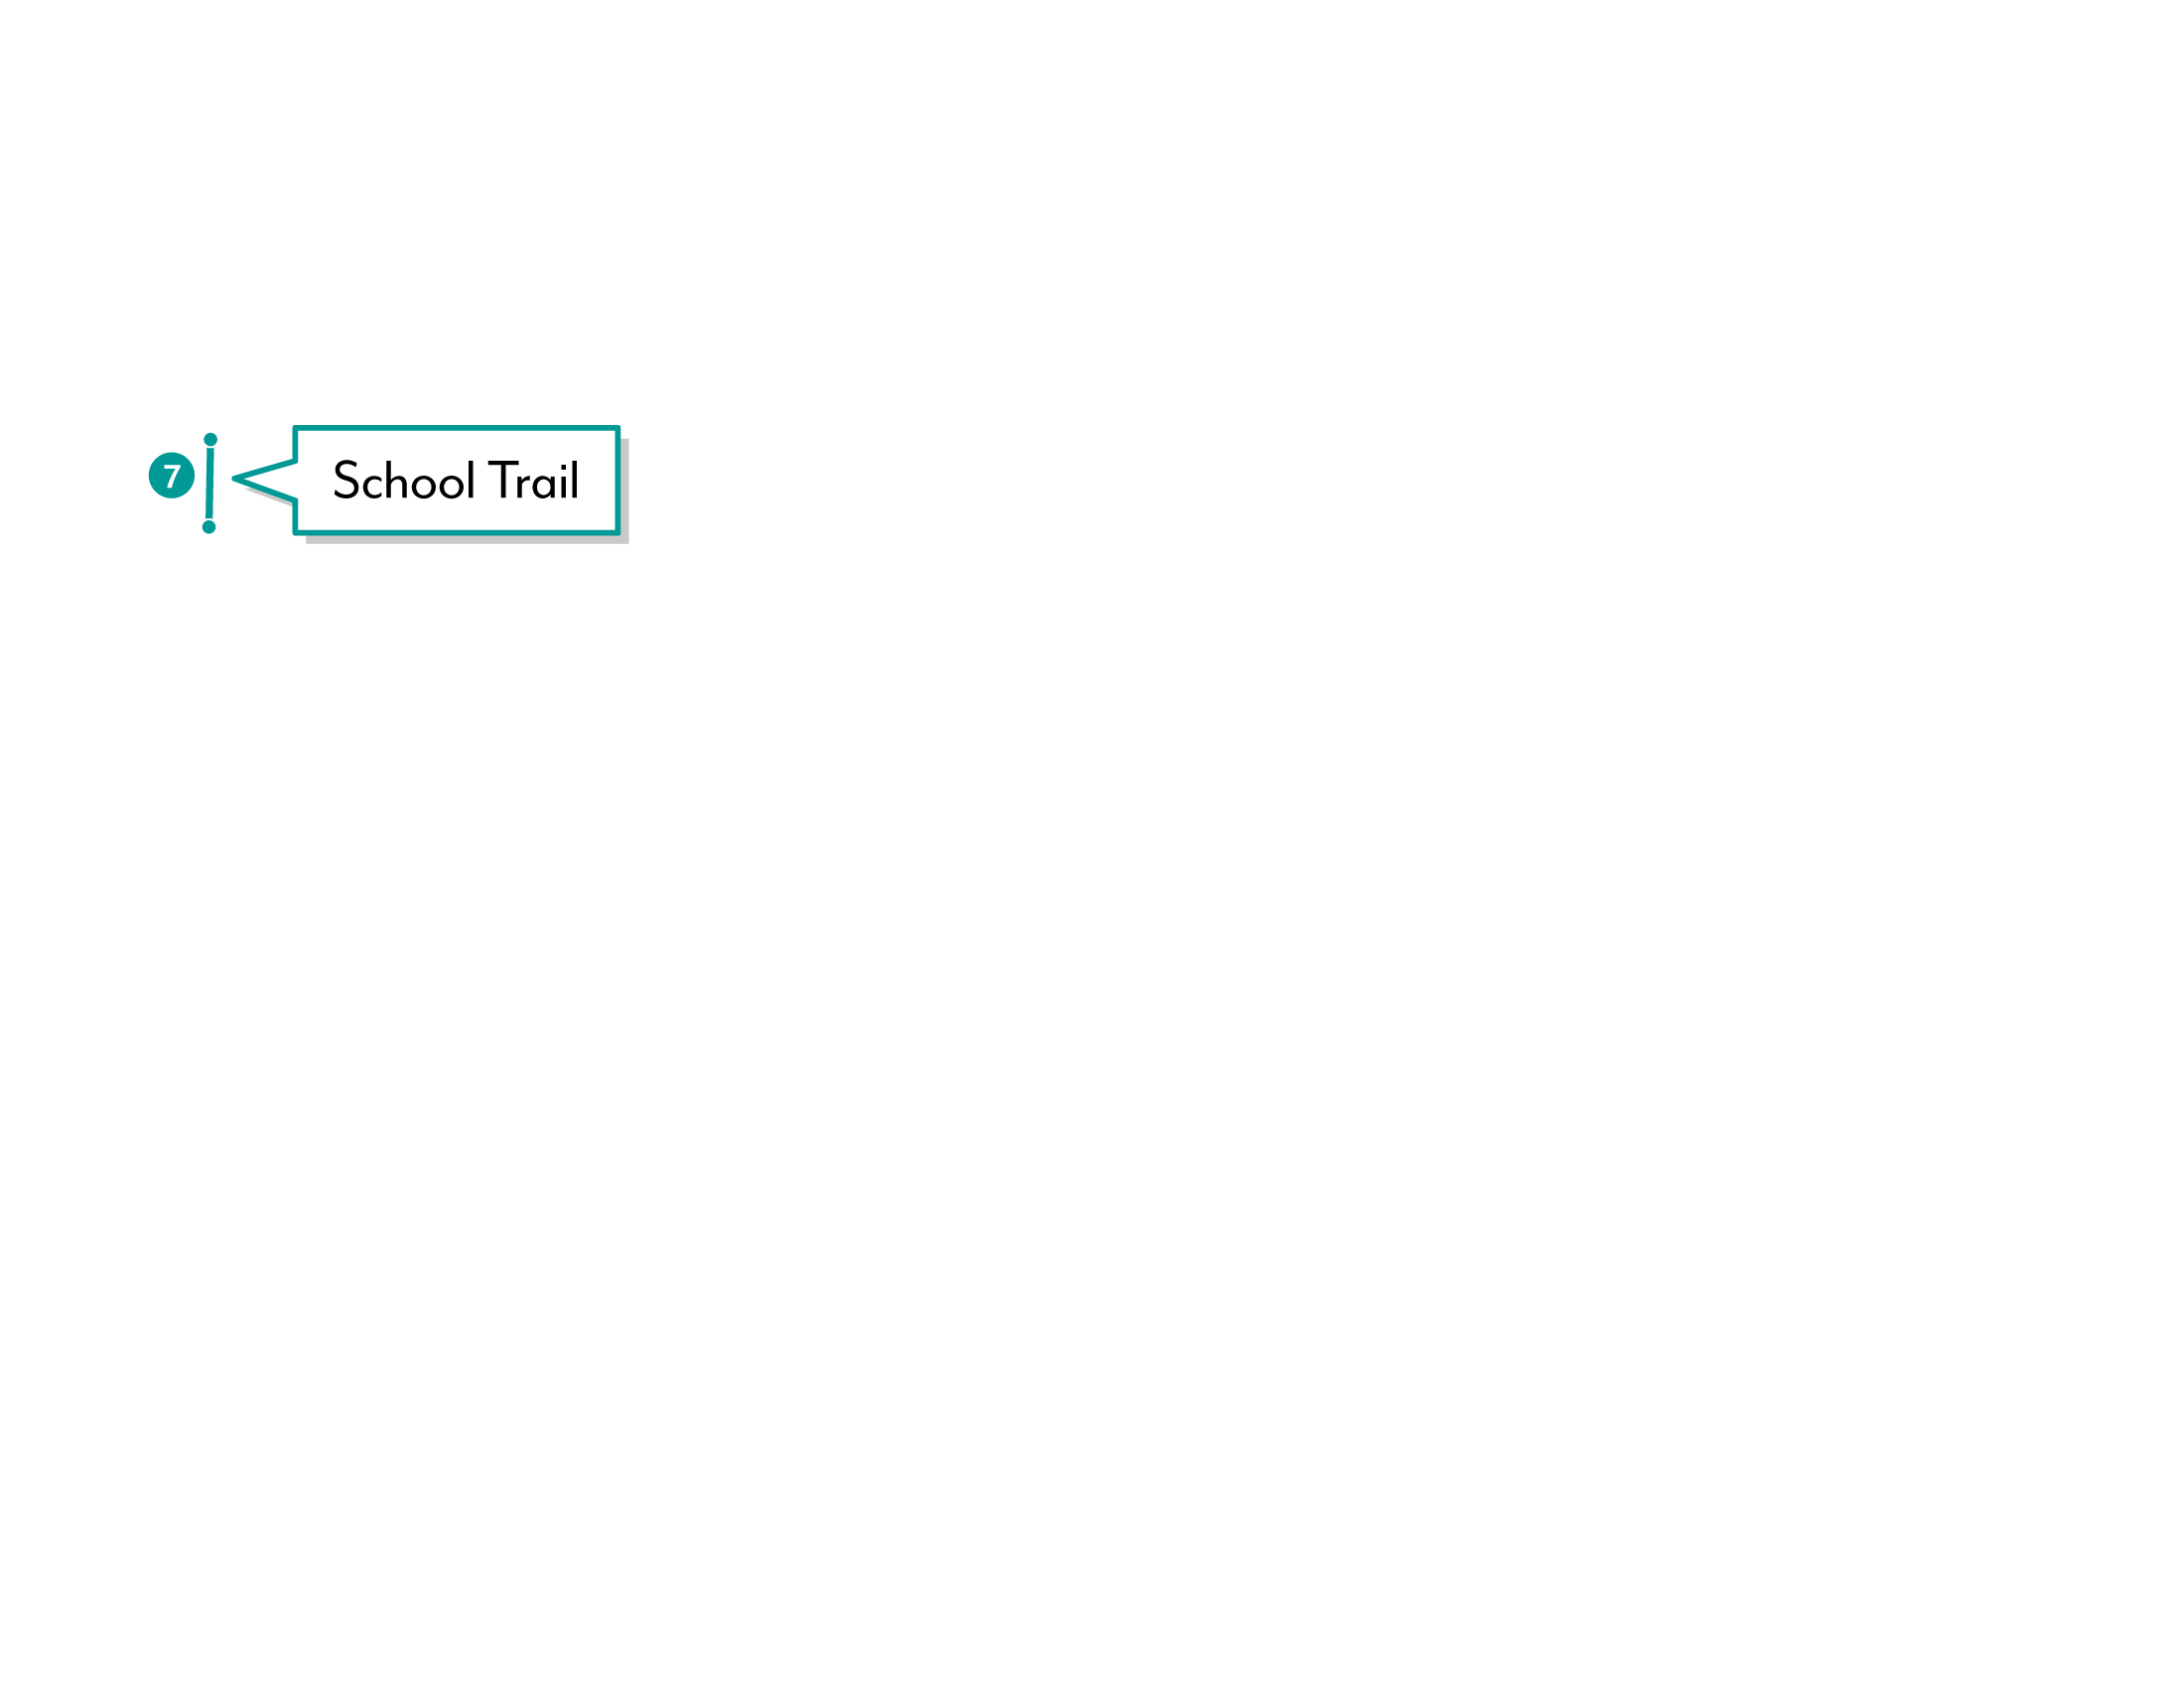 Shearwater graphic depicting the School Trail